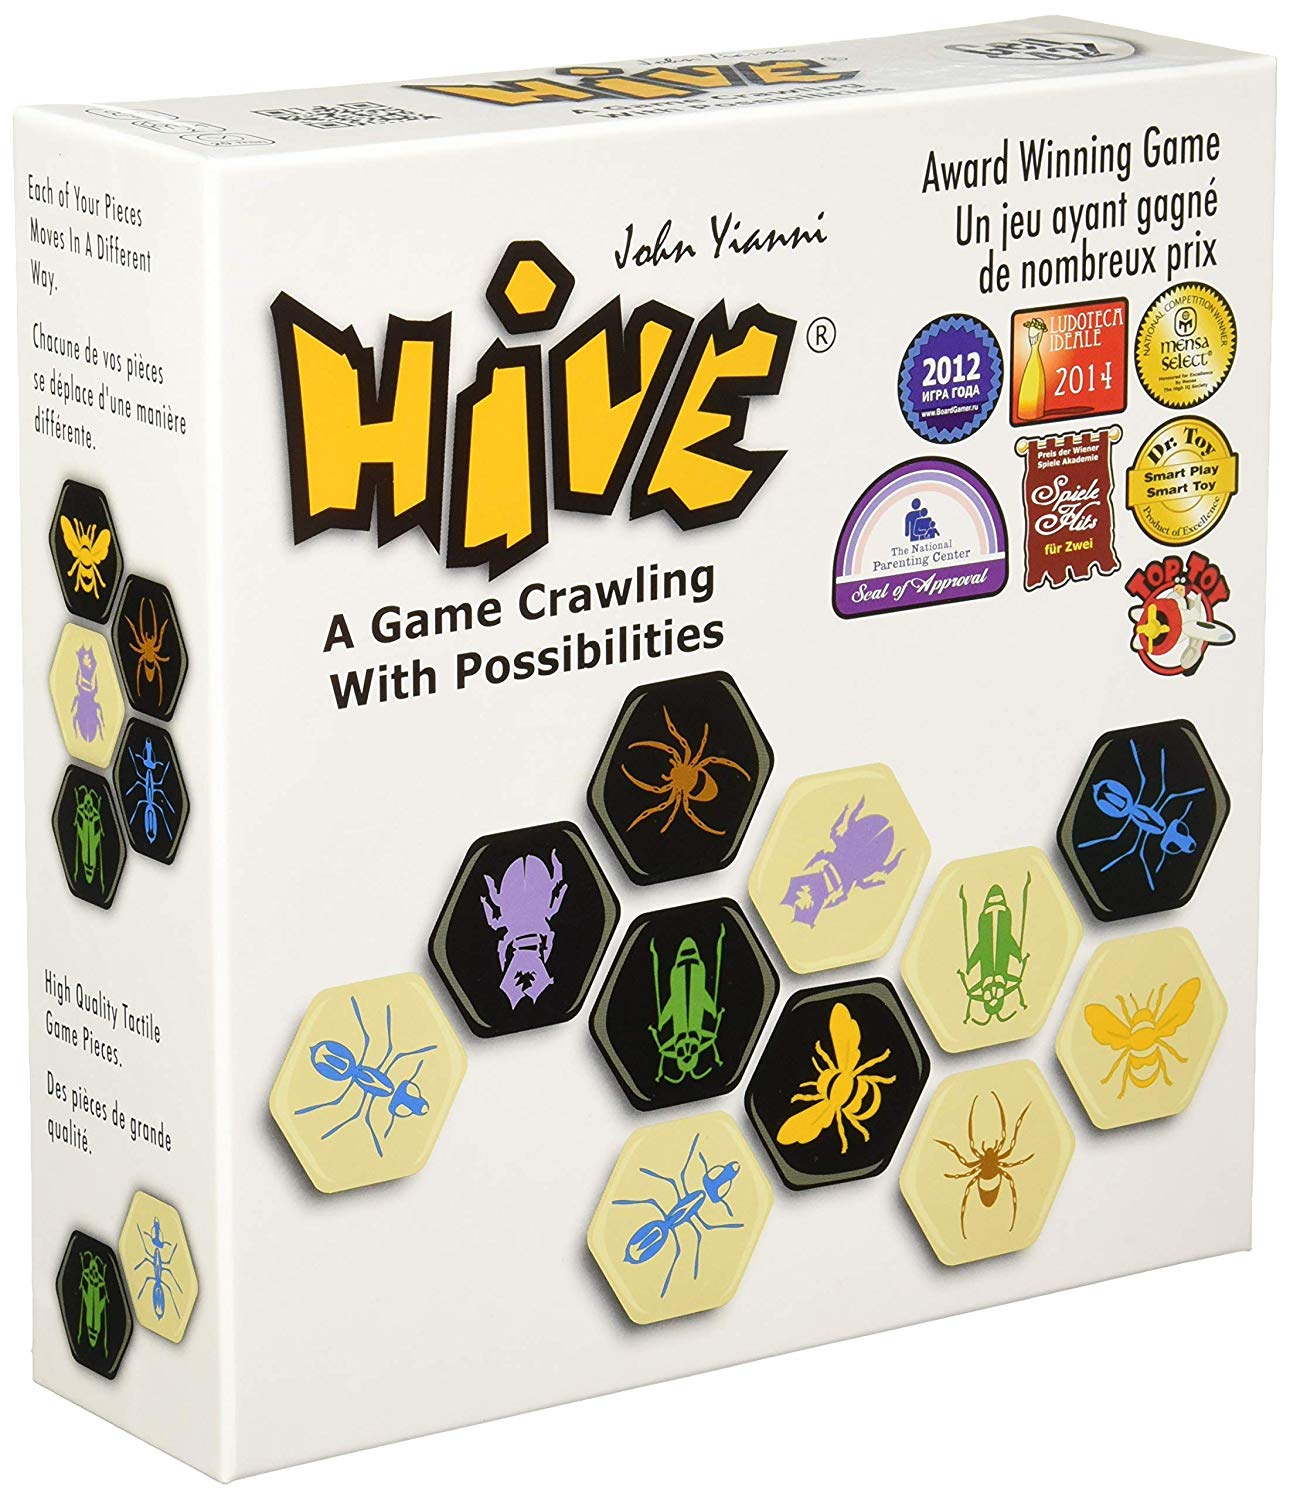 Best Family Board Games for Camping - hive.jpg